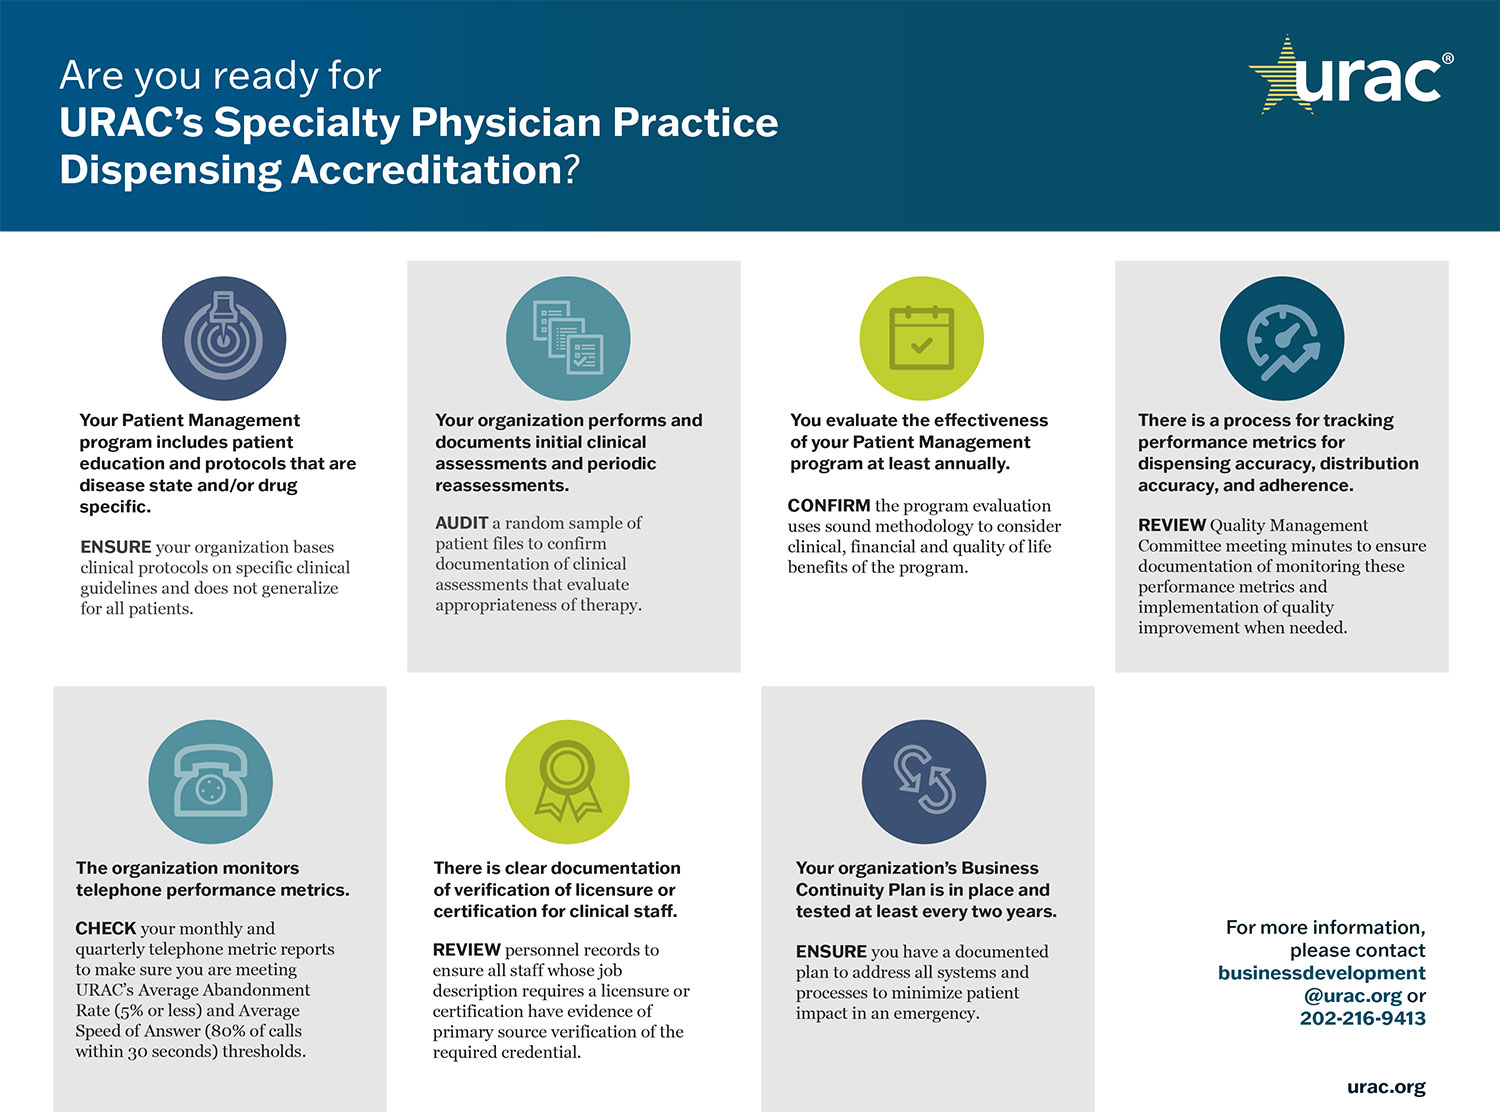 Are you ready for URAC's Specialty Physician Practice Dispensing Accreditation?